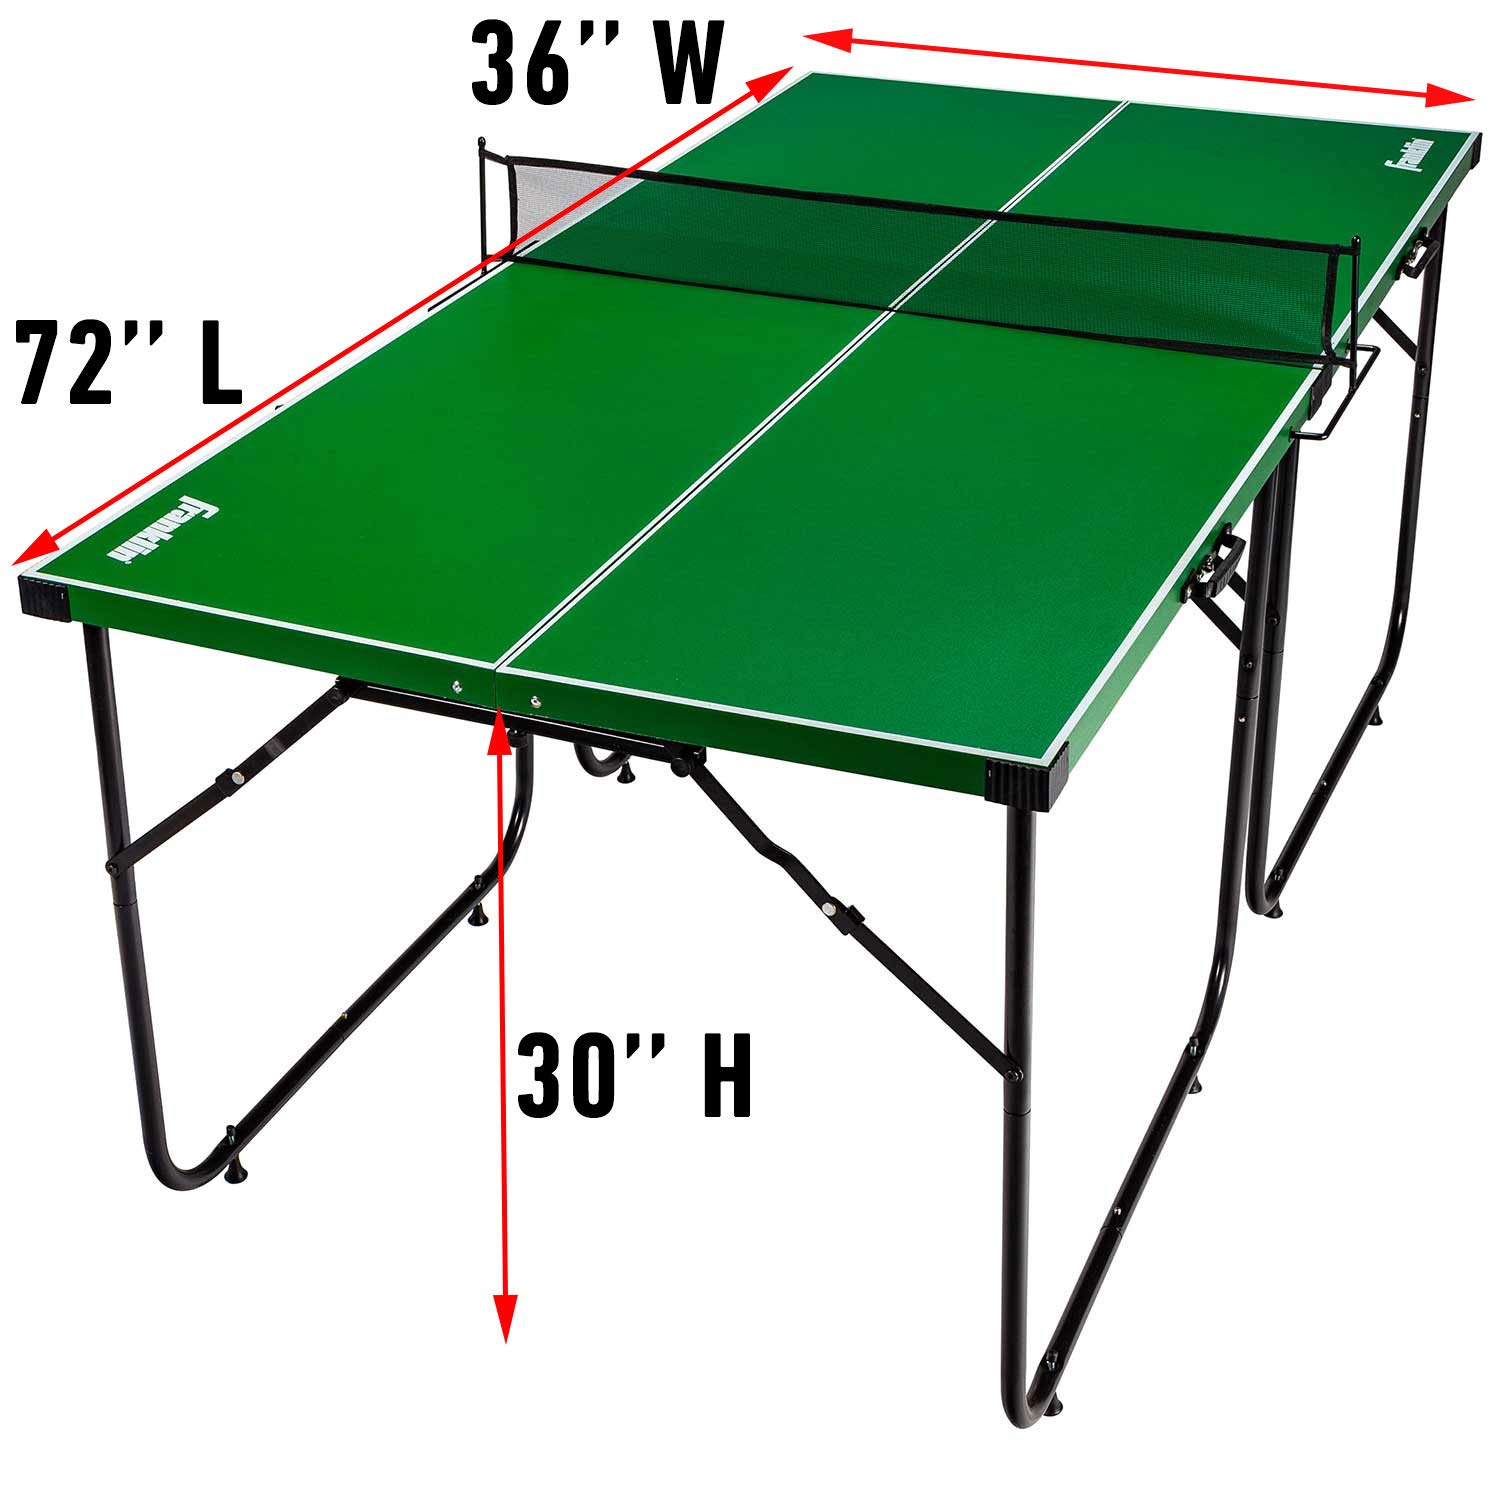 Franklin Sports Mid Size Table Tennis Table Ideal For Smaller Spaces Space Saving Design